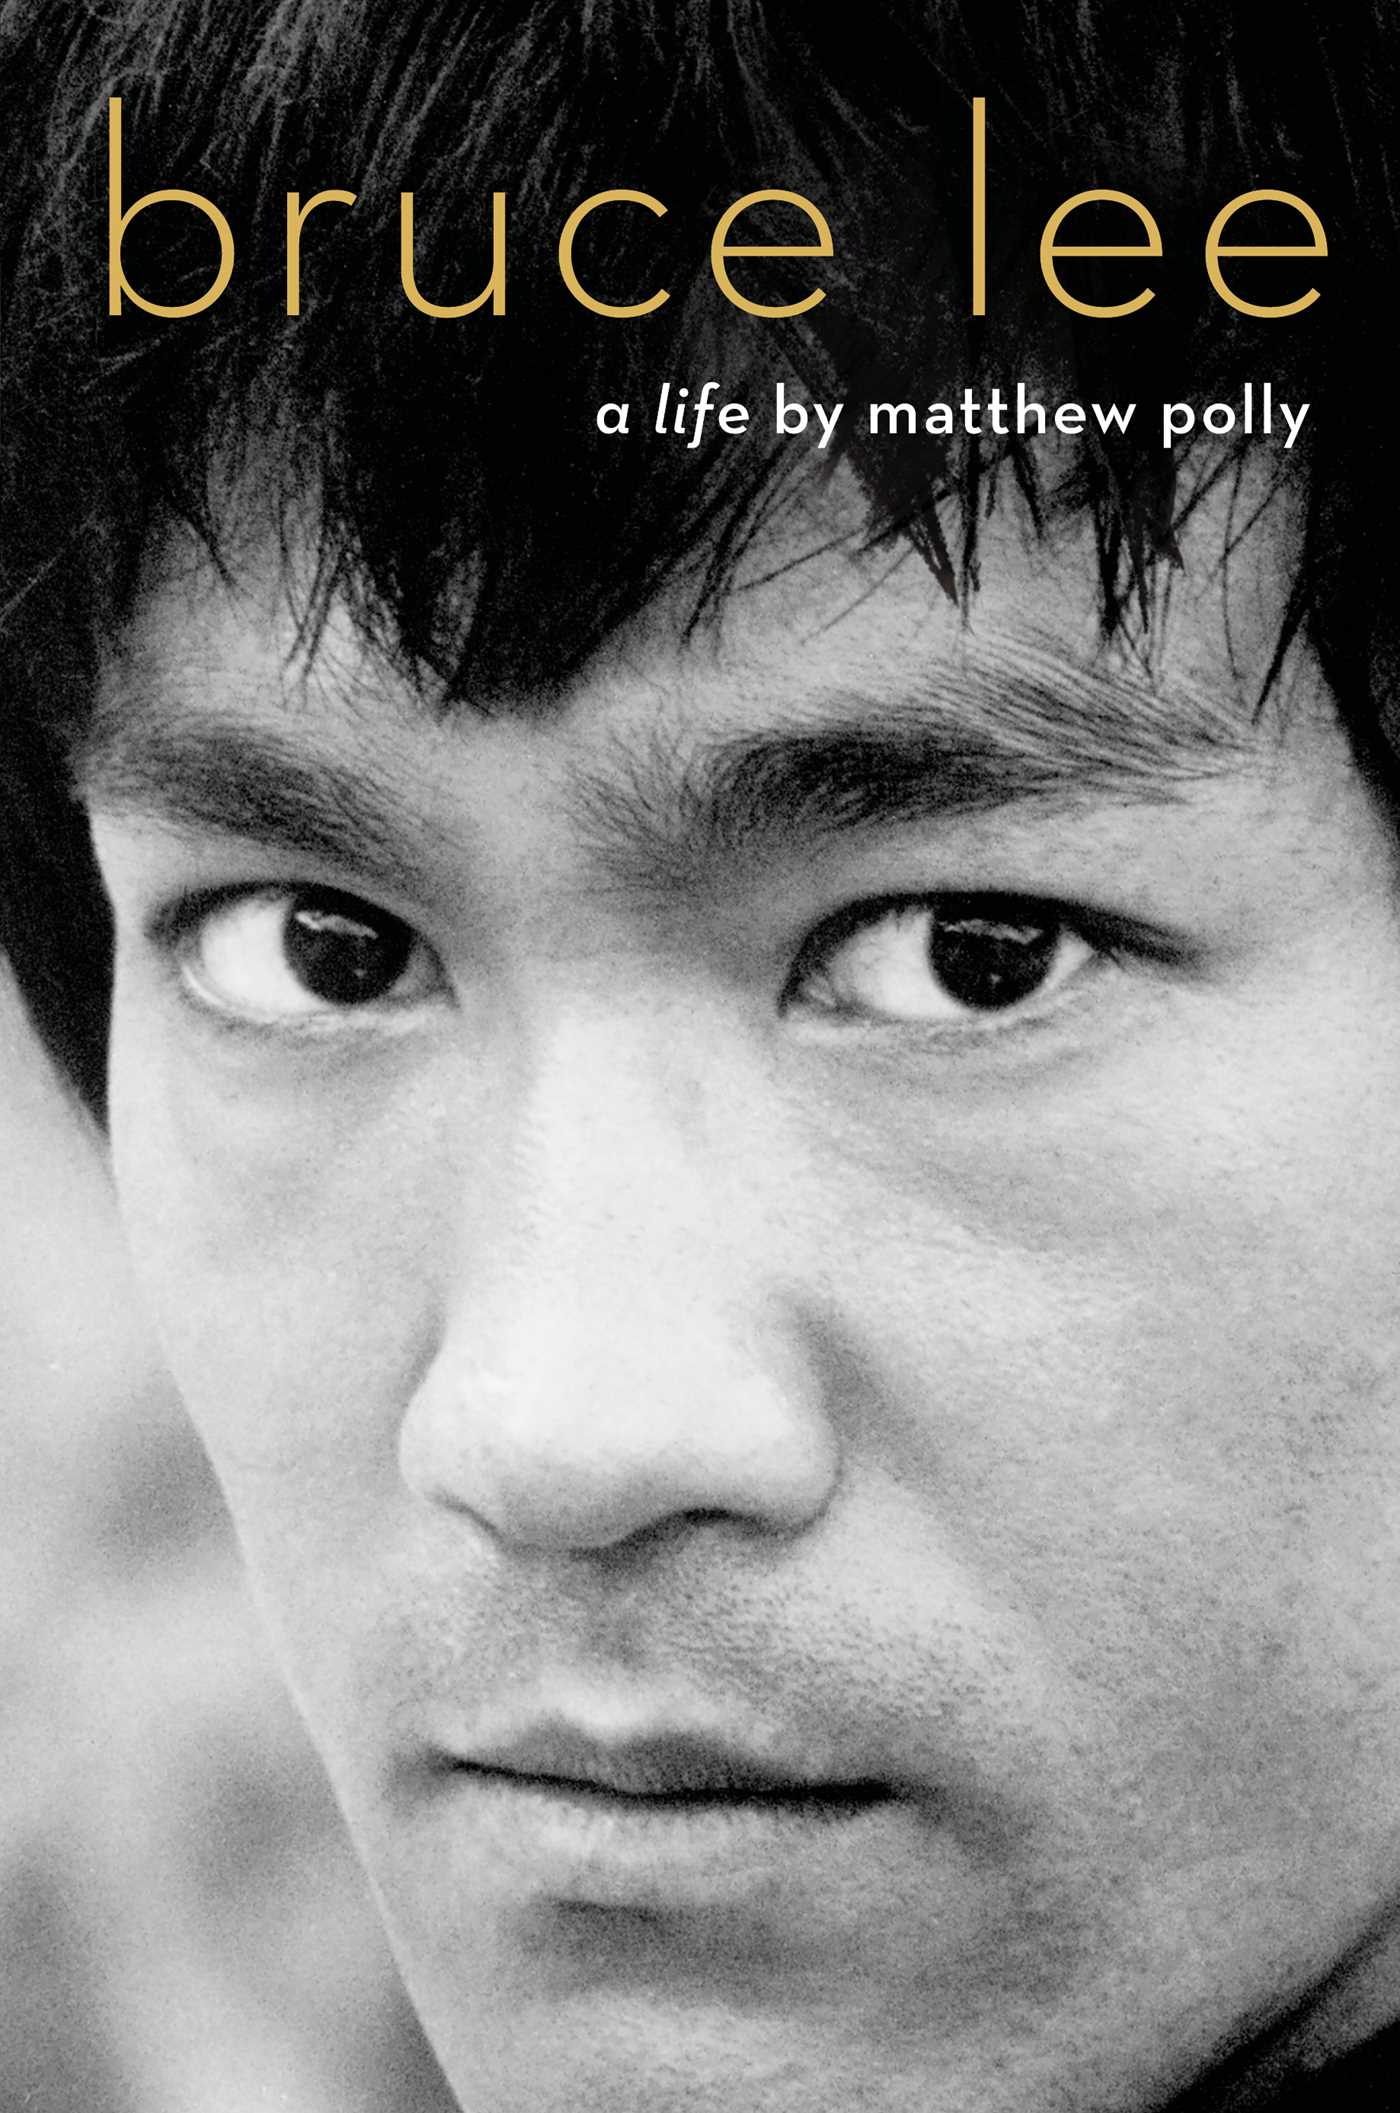 Image result for bruce lee matthew polly